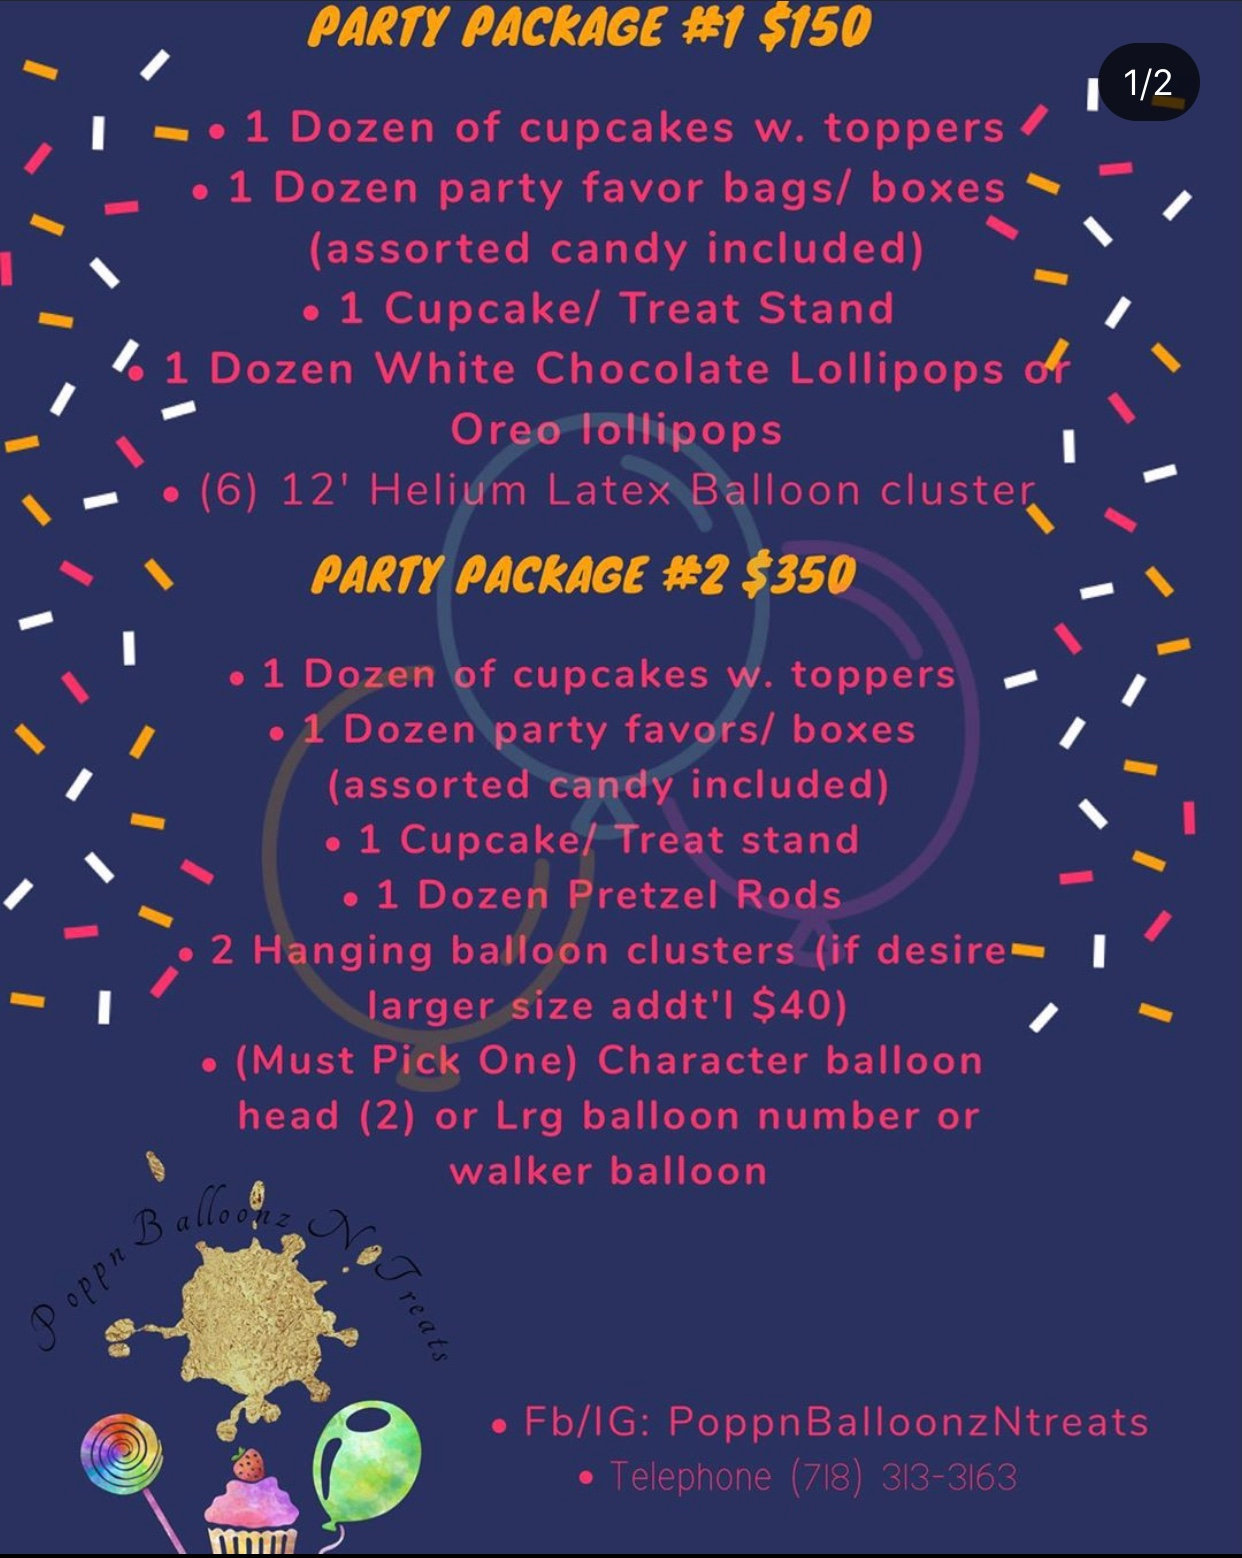 Party Package #1 or #2